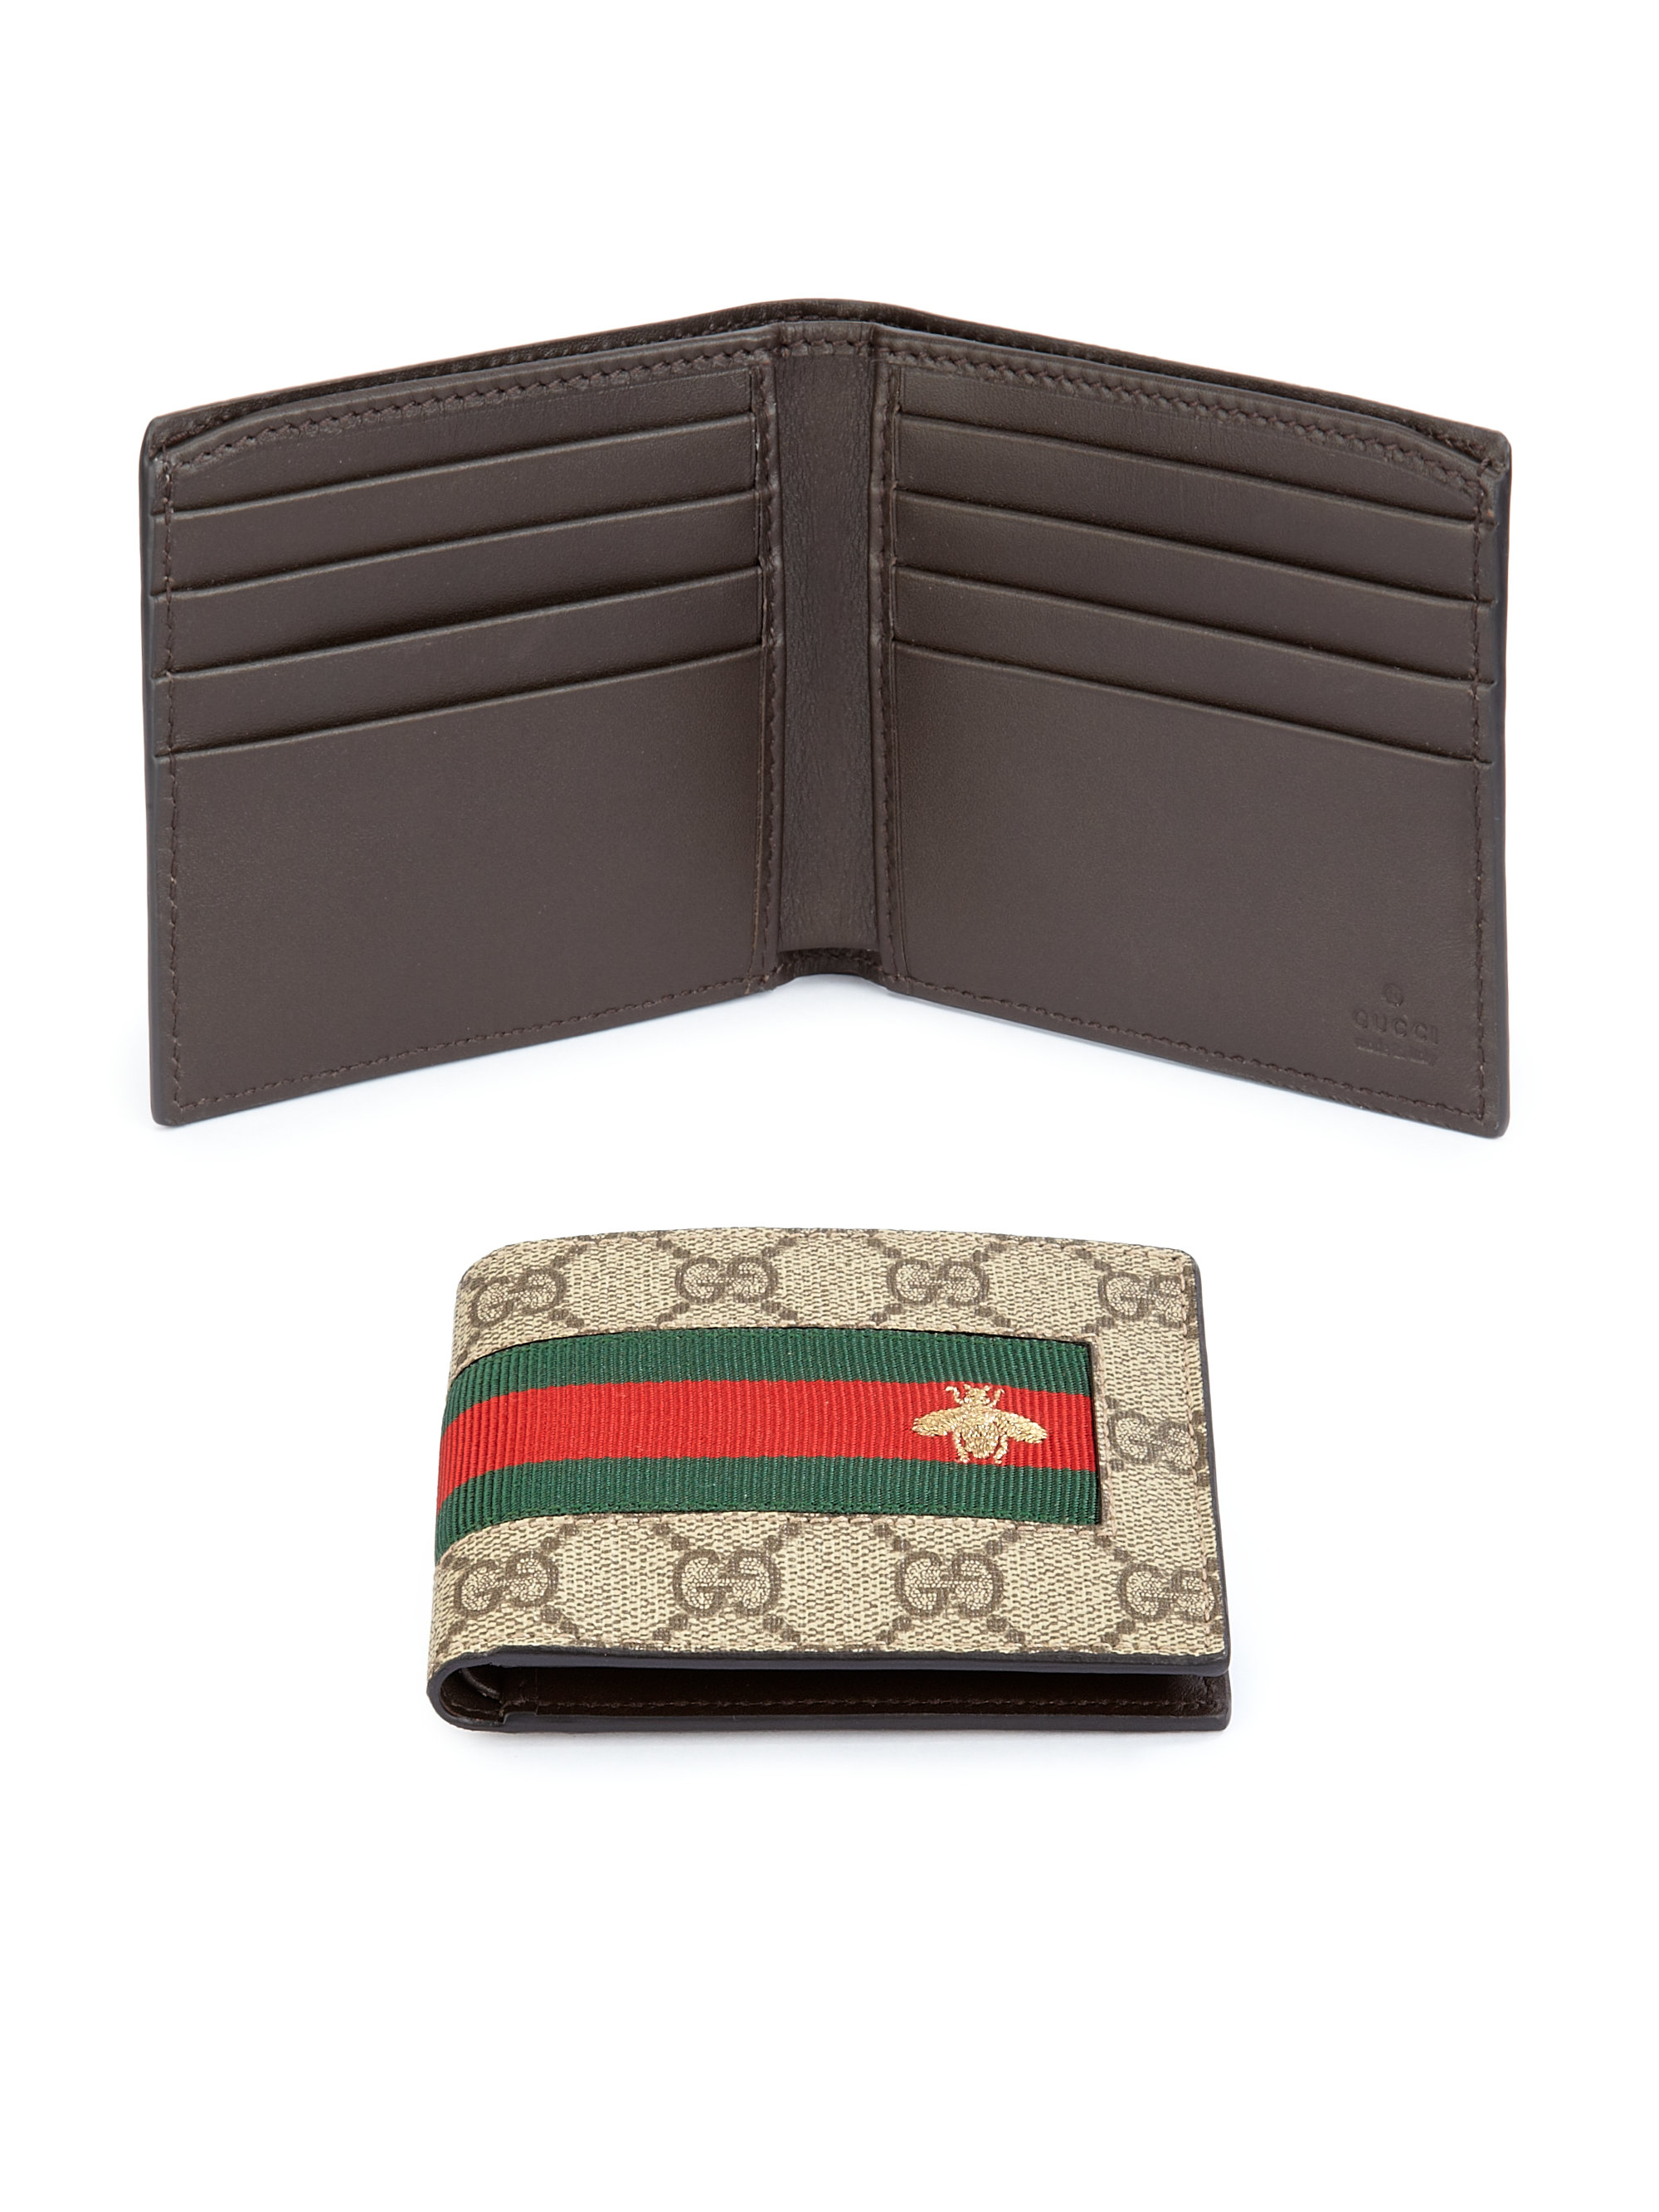 Gucci Gg Supreme Canvas Bi Fold Wallet In Brown For Men Lyst